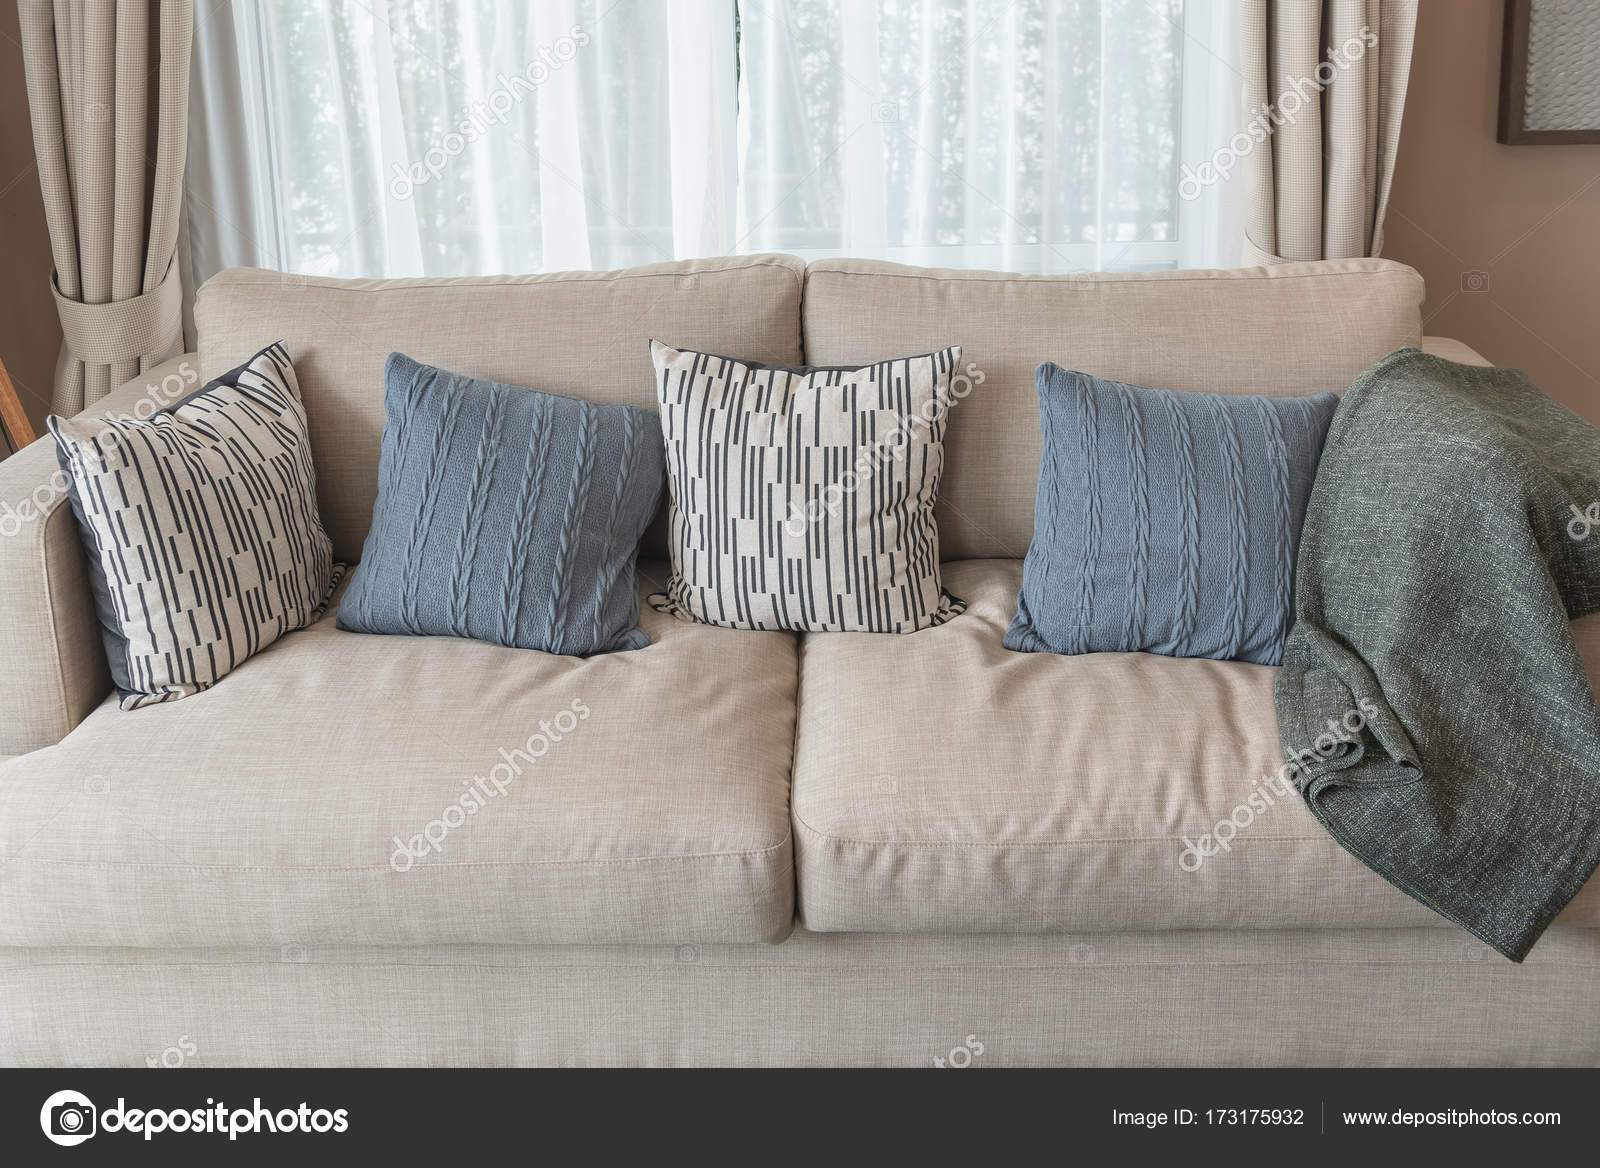 depositphotos stock photo modern living room style with